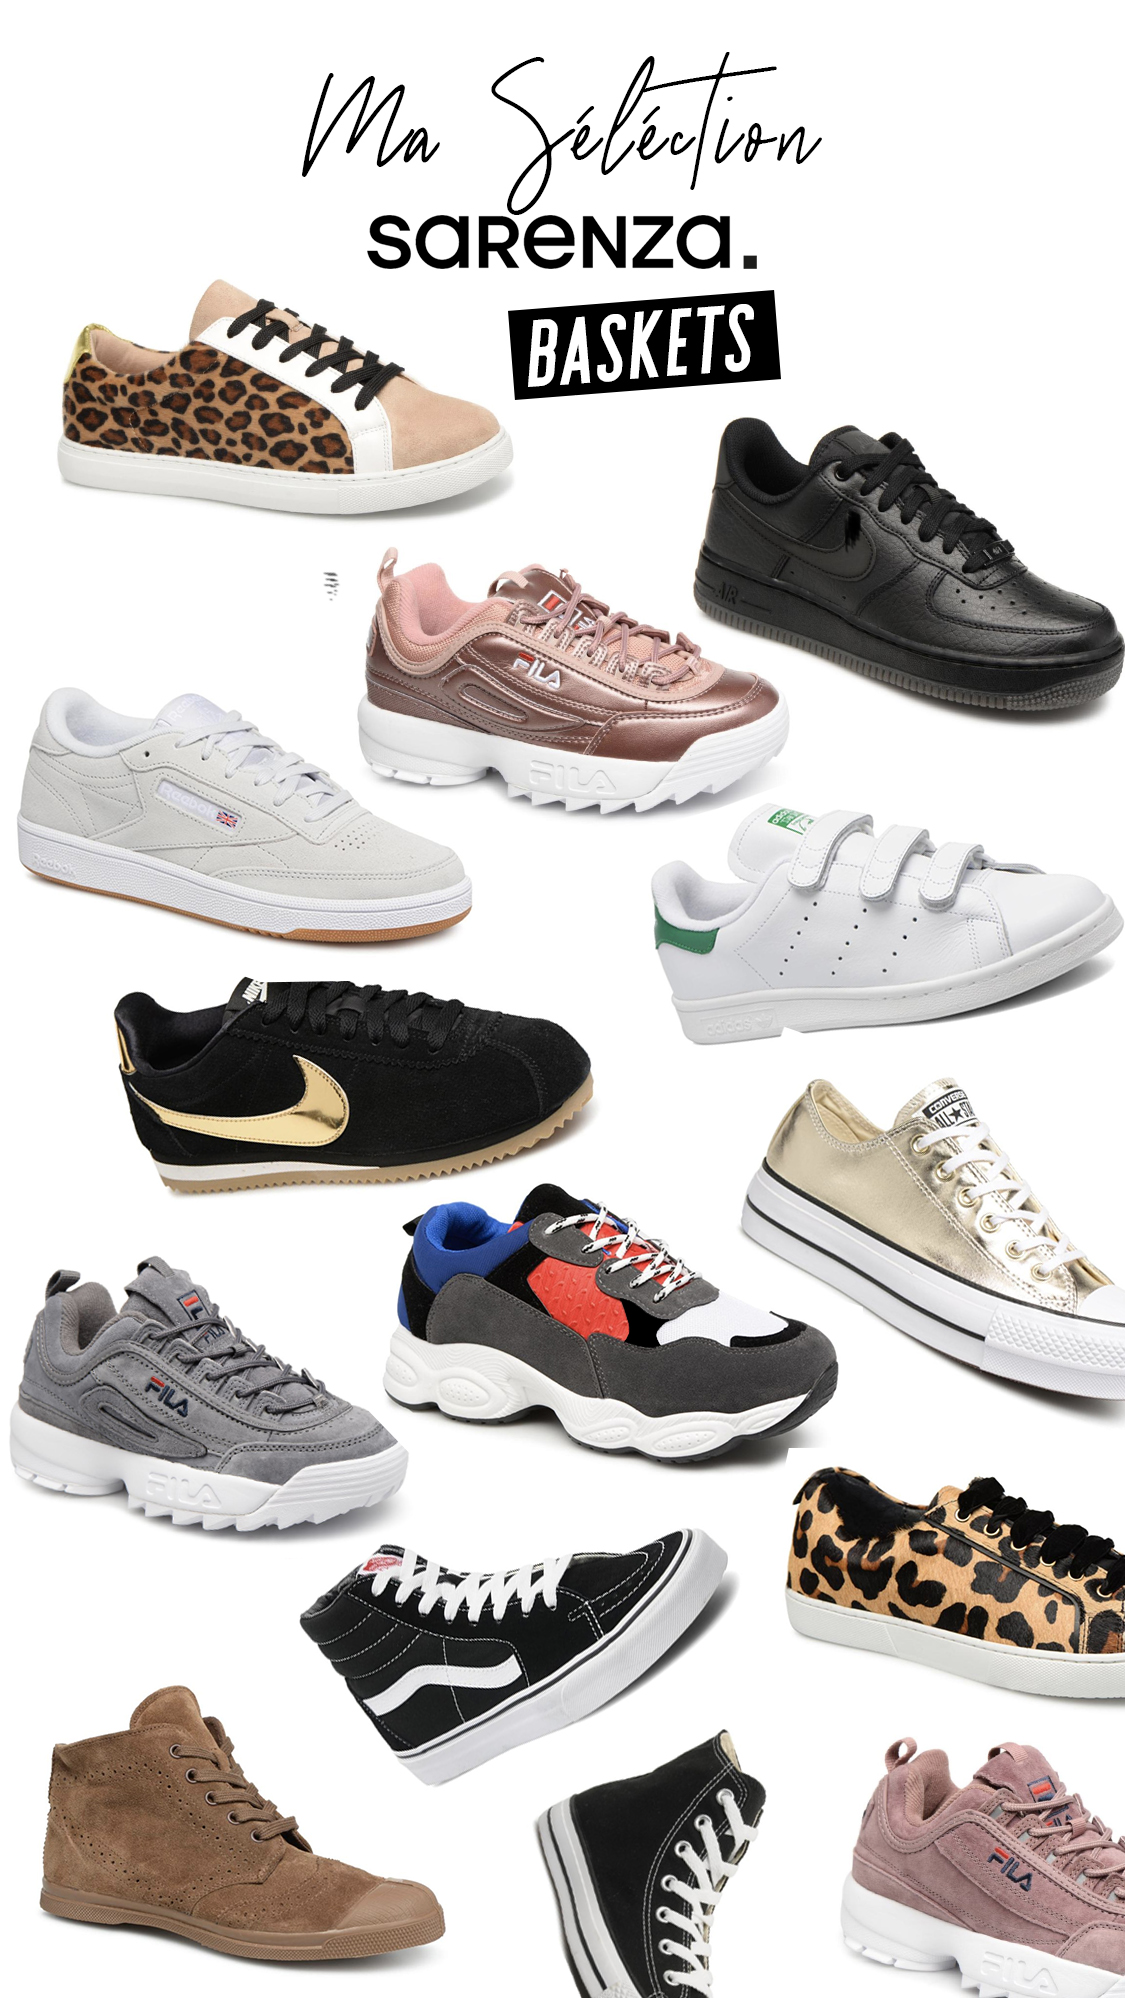 selection baskets sneakers sarenza meganvlt